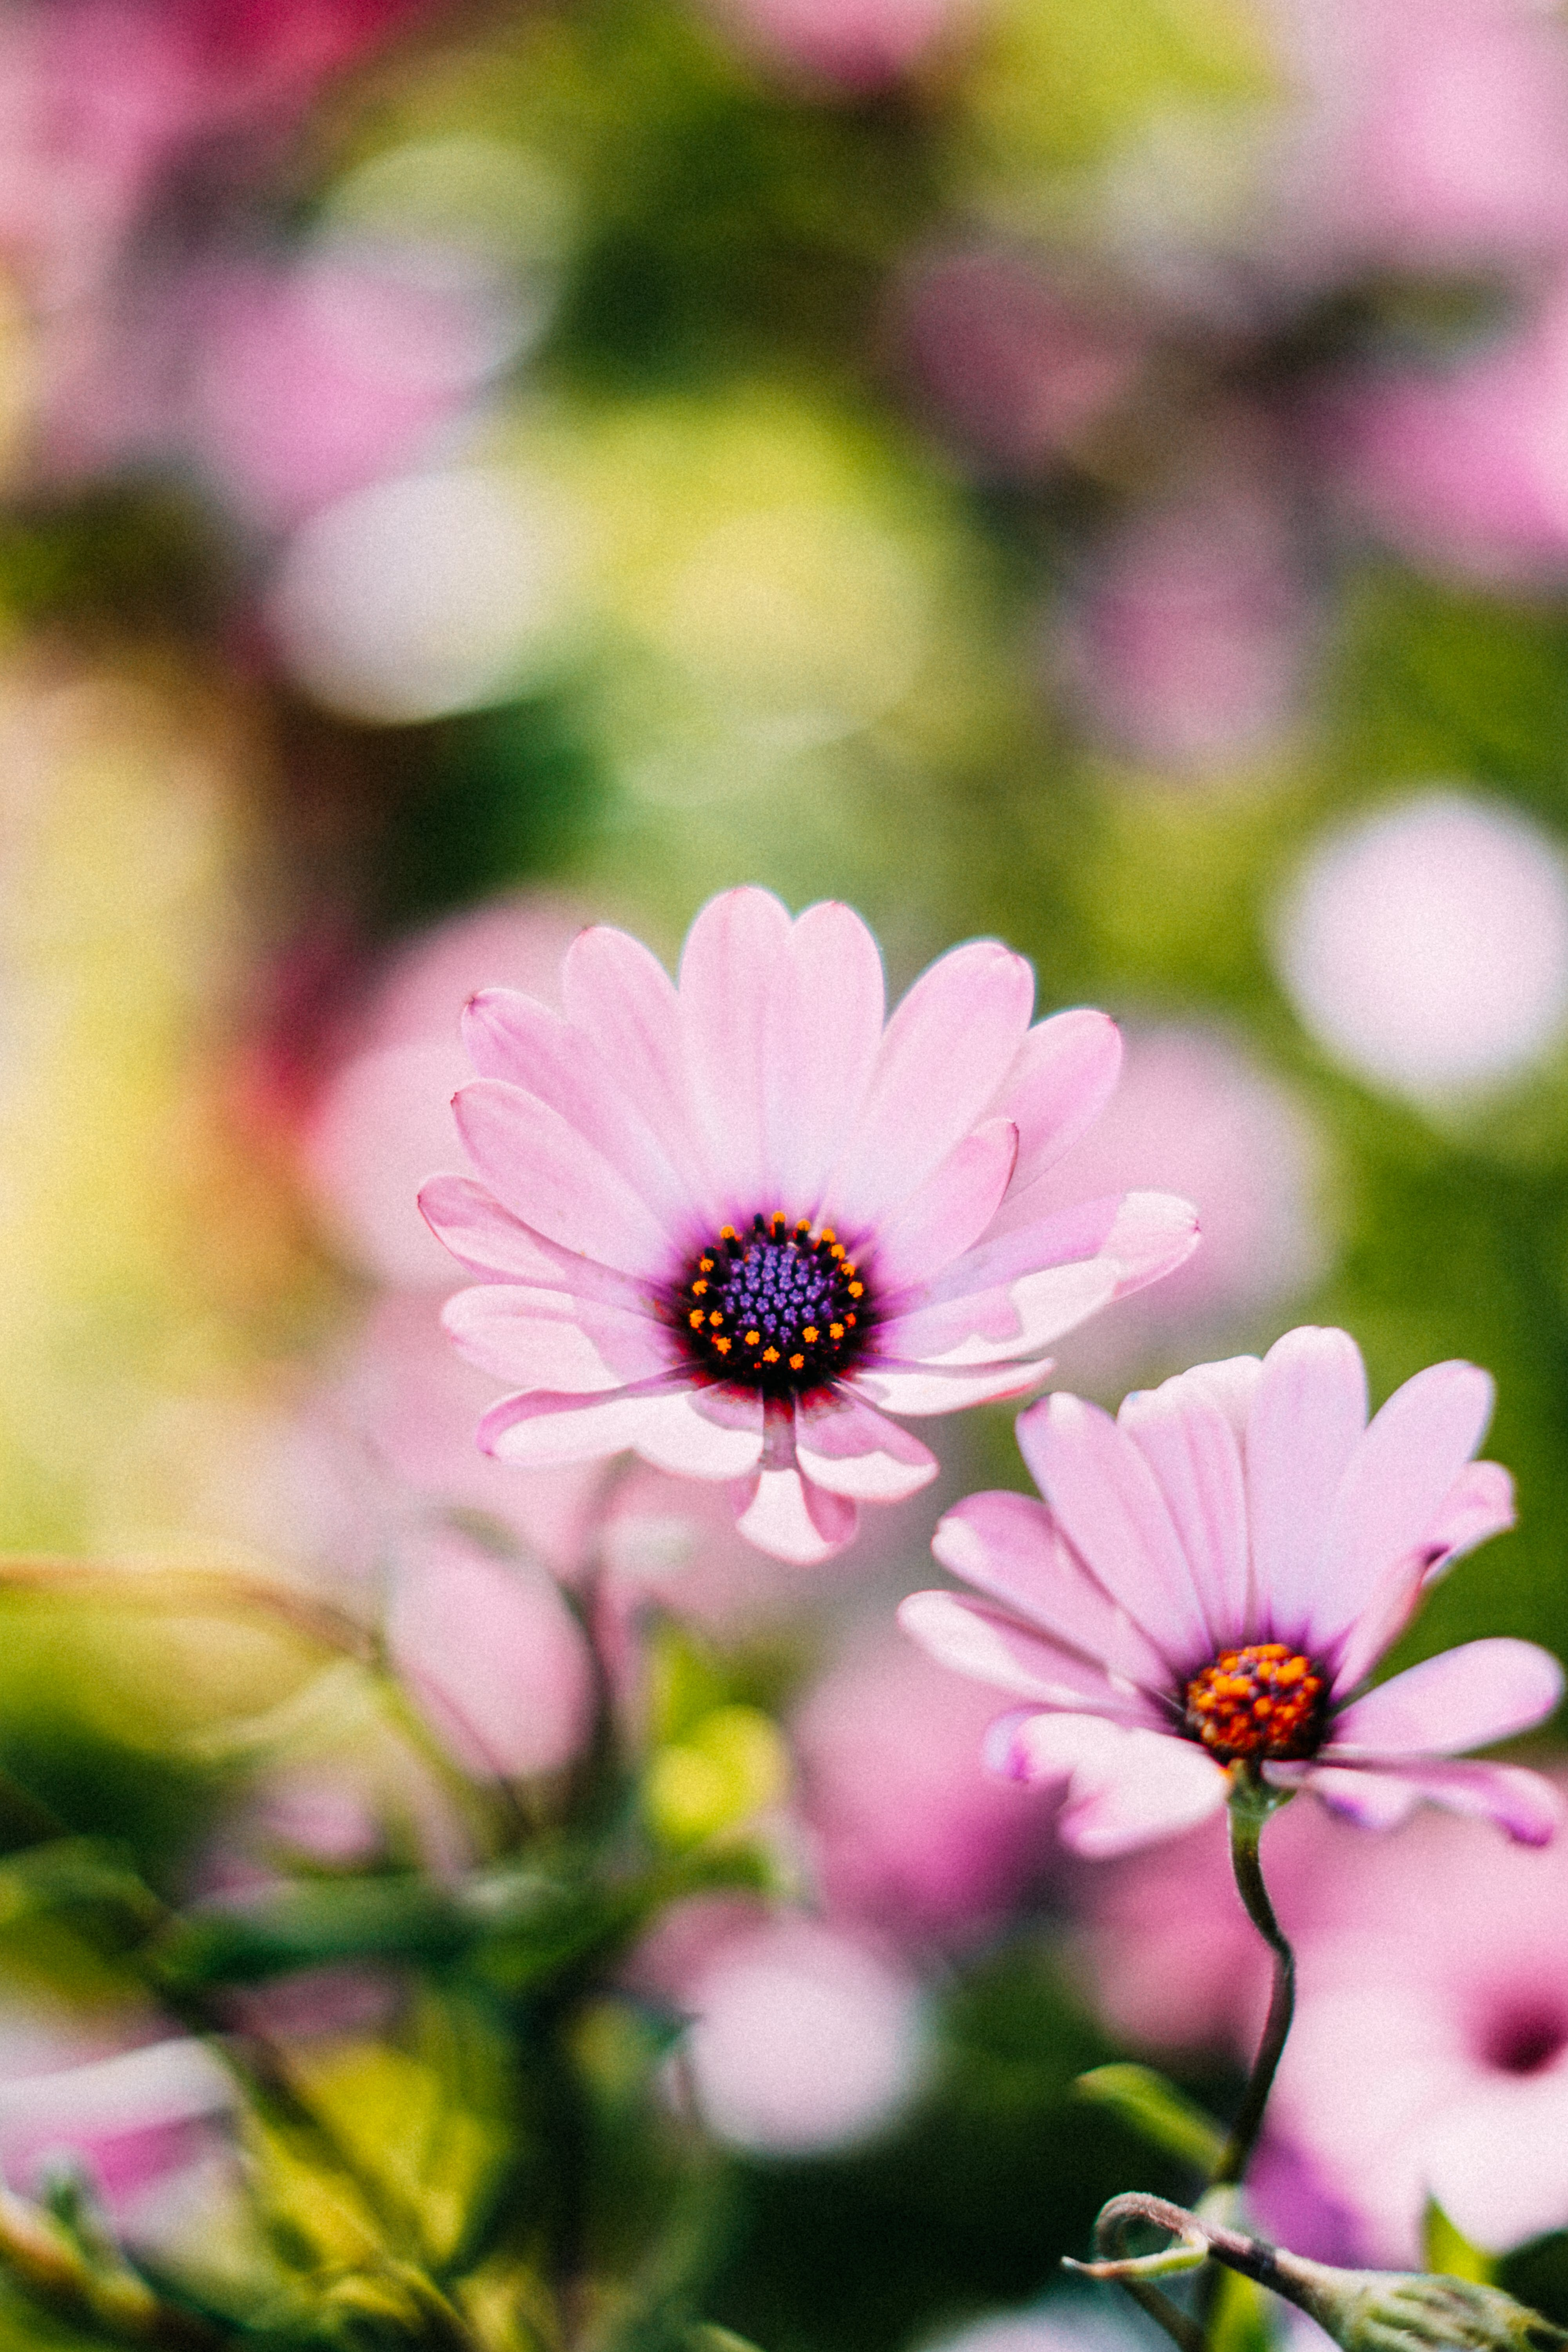 Selective Focus Photography of Pink Osteospermum Flowers